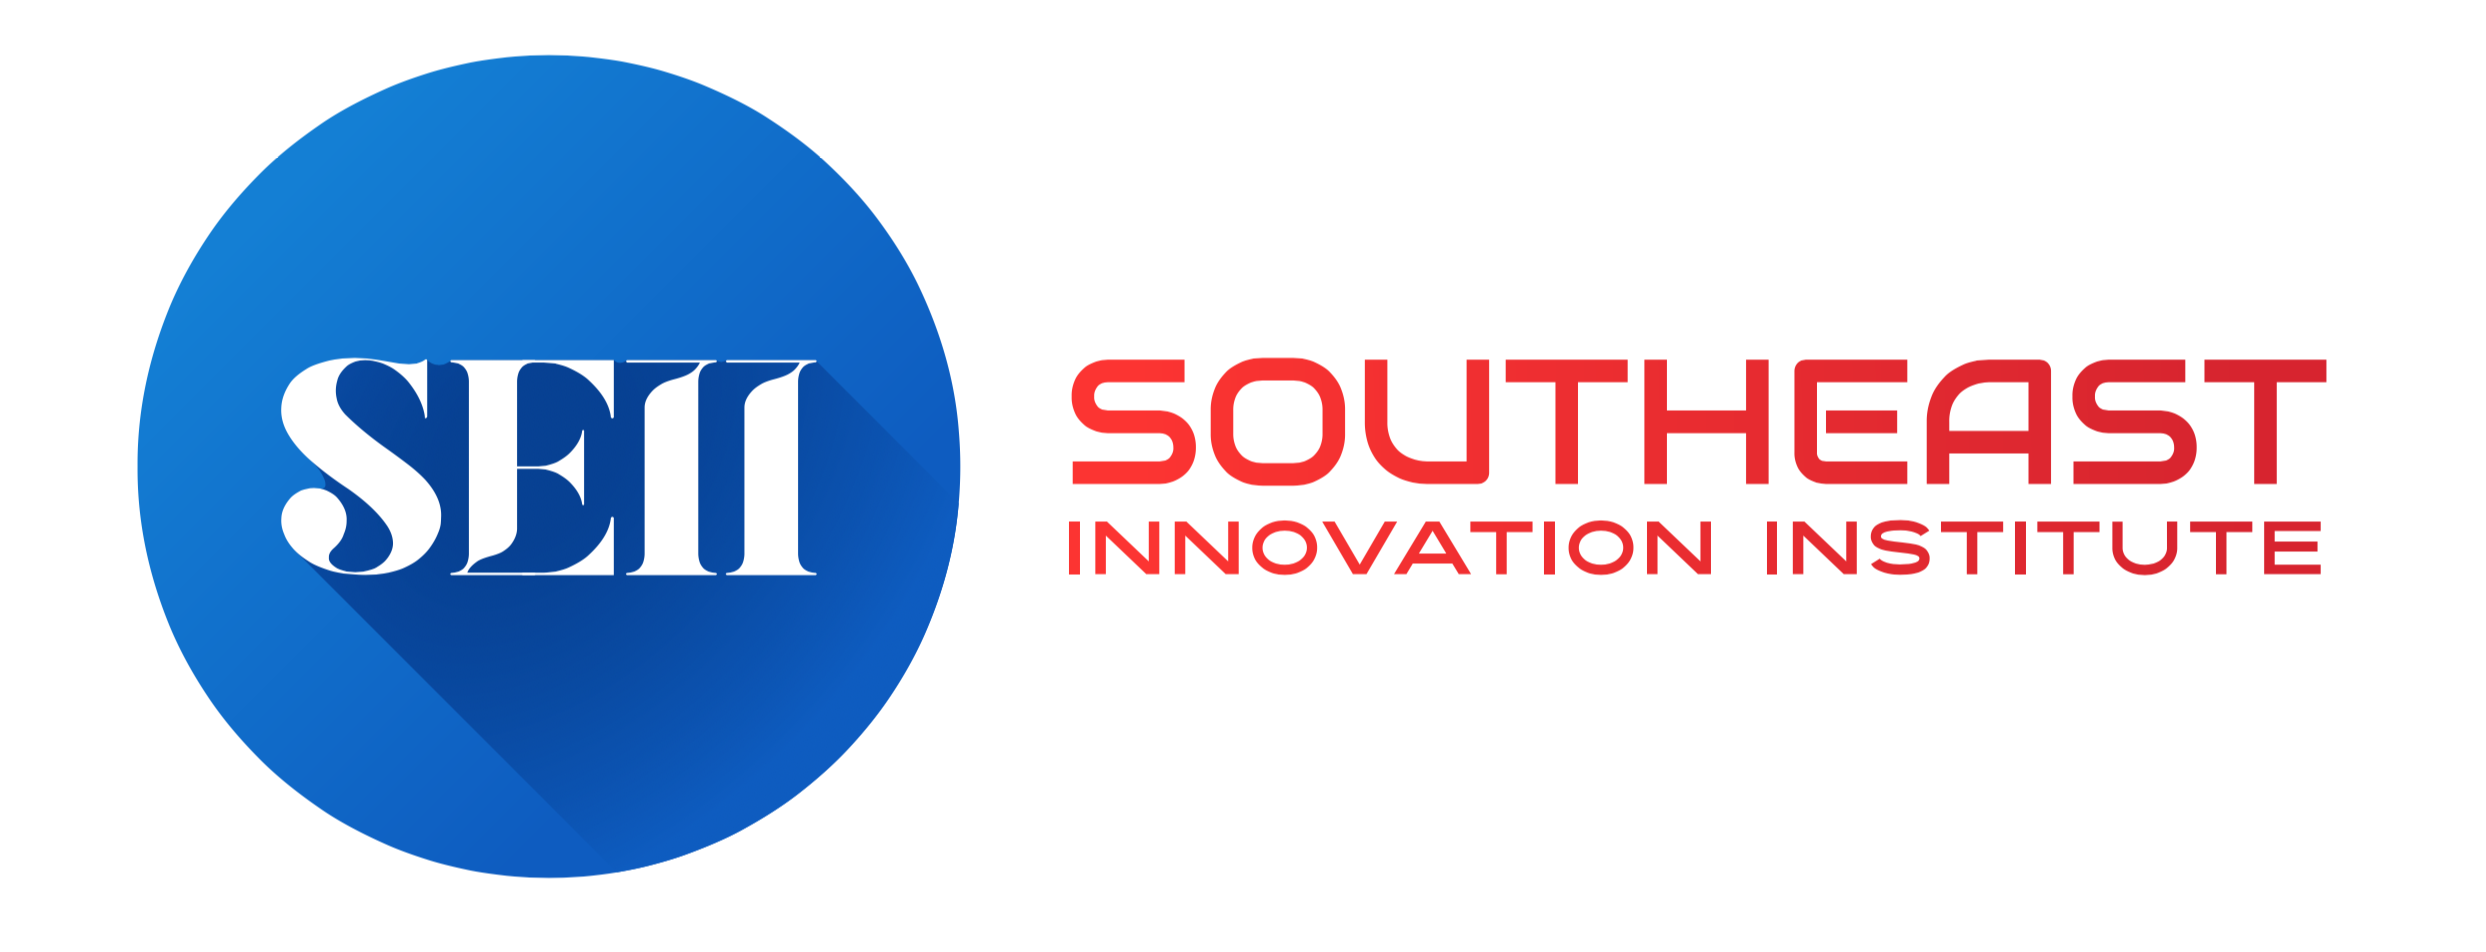 SouthEast Innovation Institute Aligned for Success to Assist Tech Companies